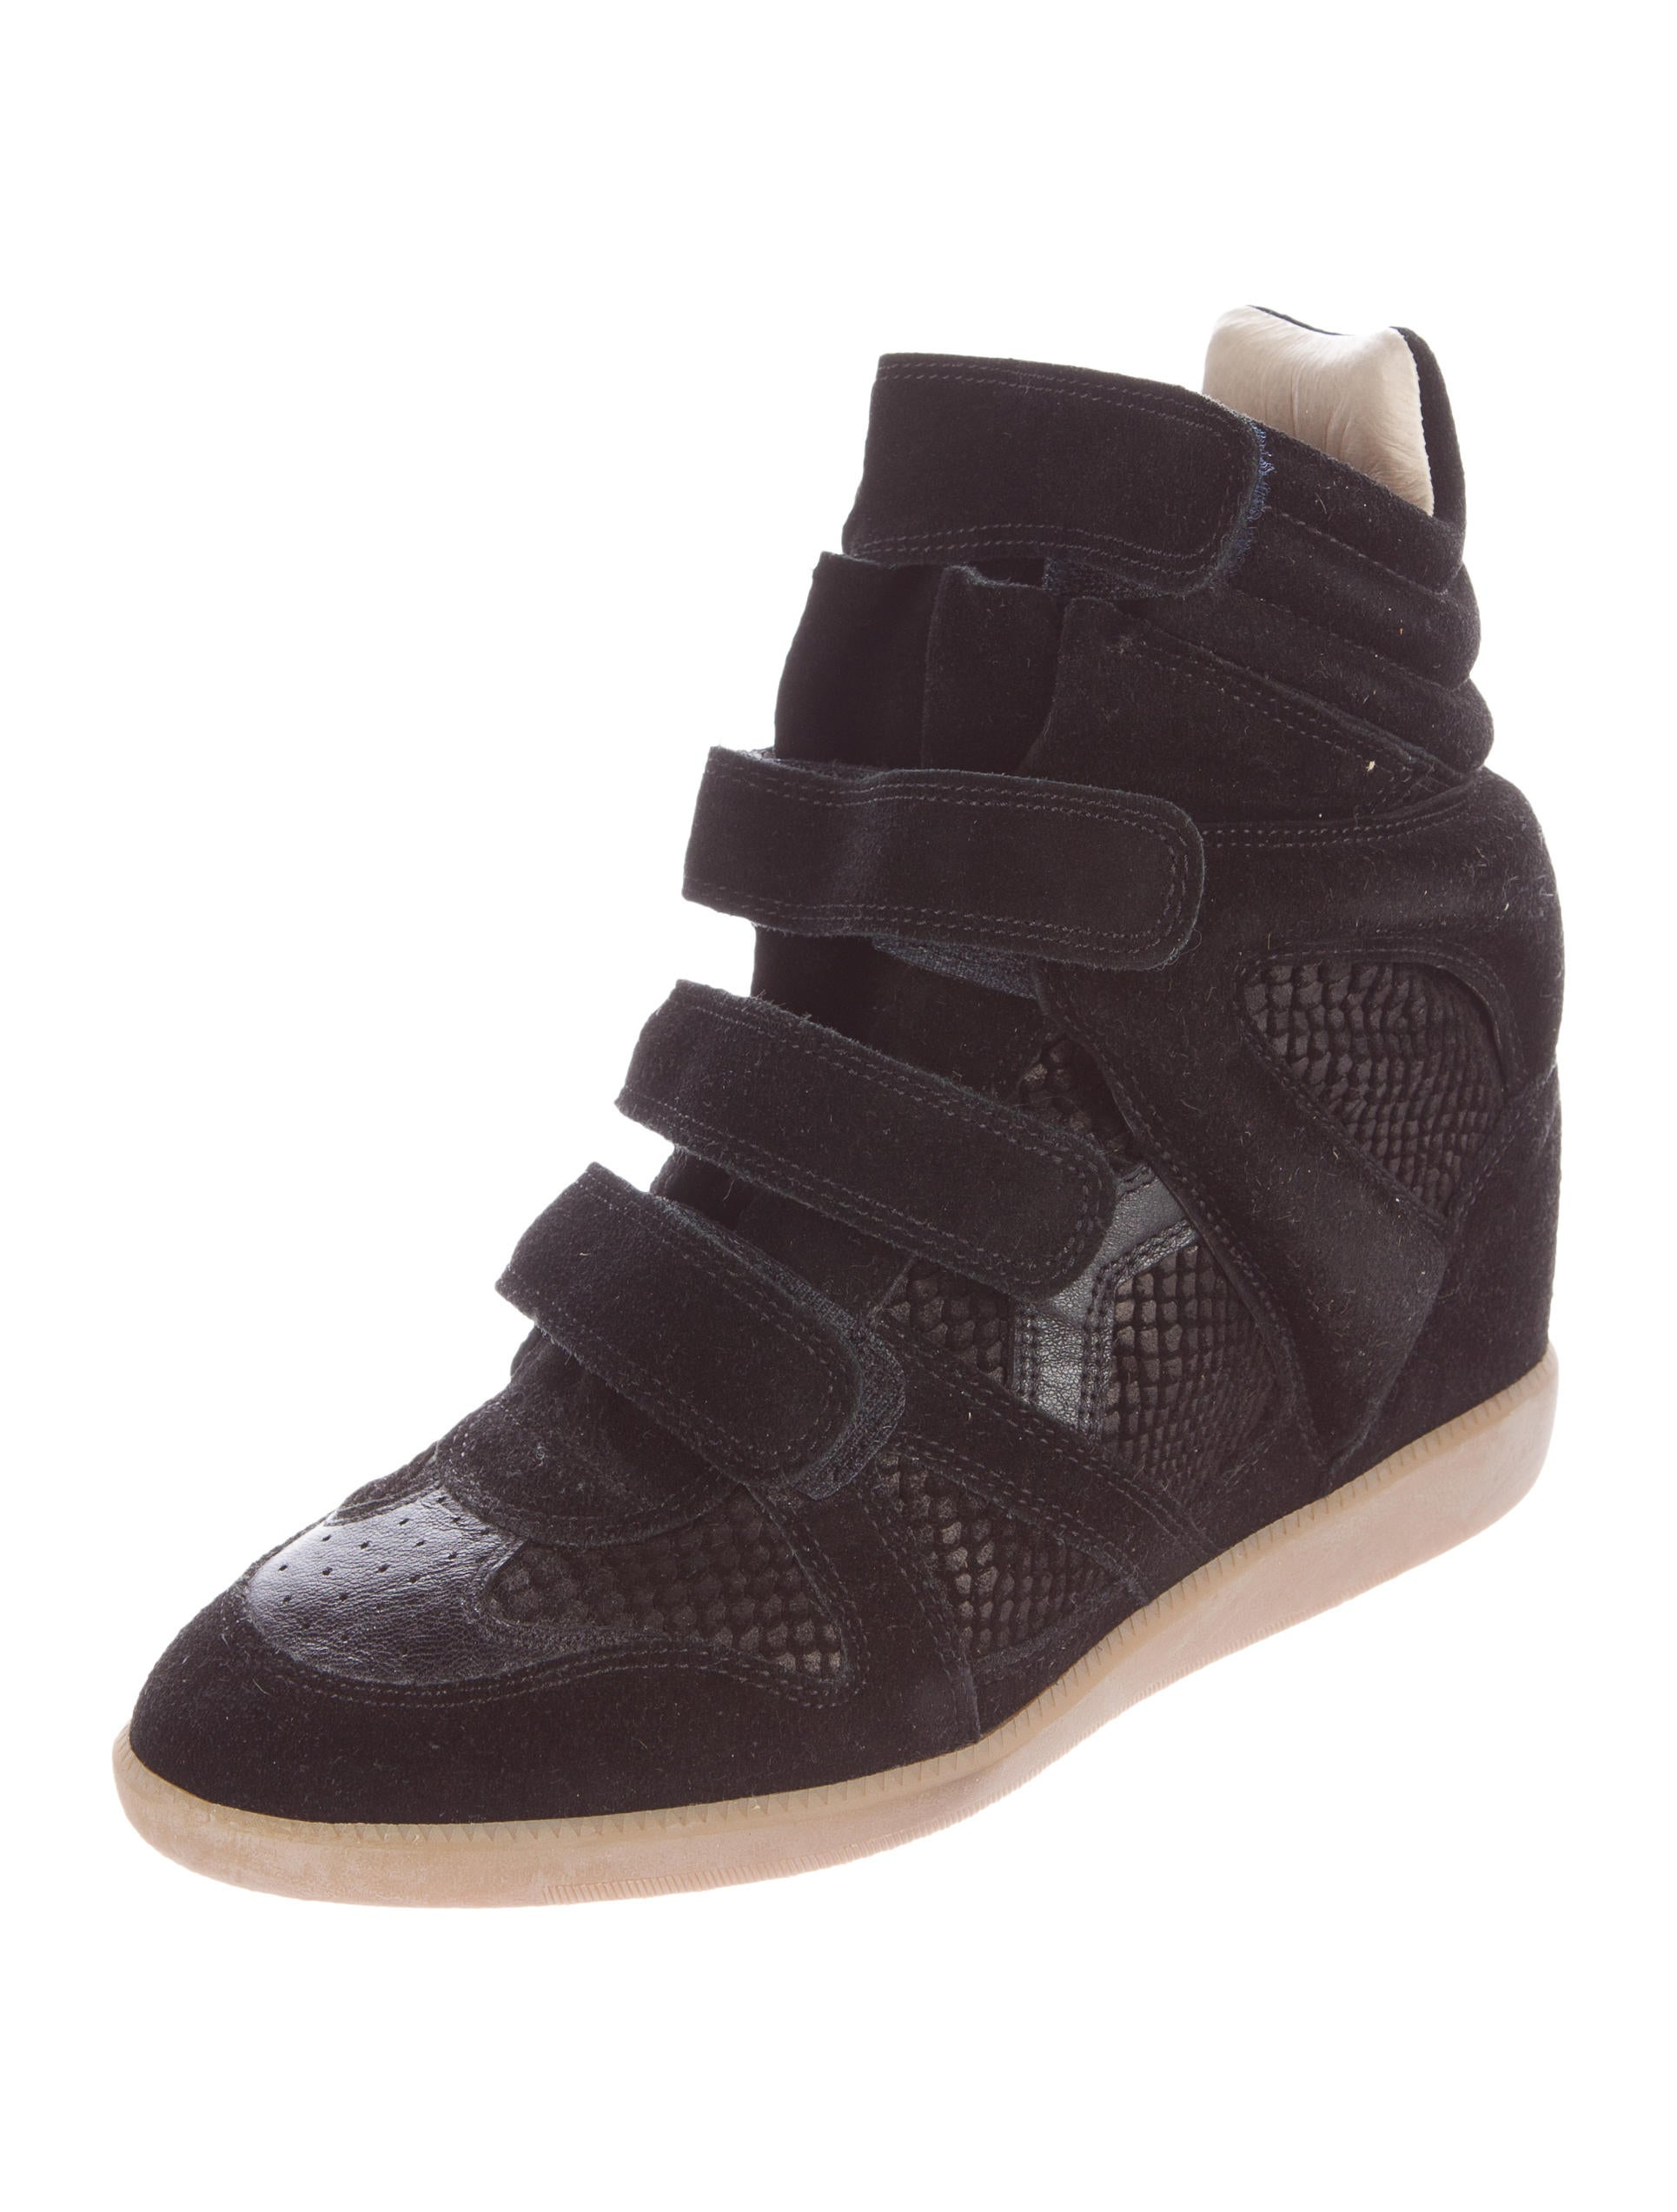 isabel marant beckett wedge sneakers shoes isa34761 the realreal. Black Bedroom Furniture Sets. Home Design Ideas